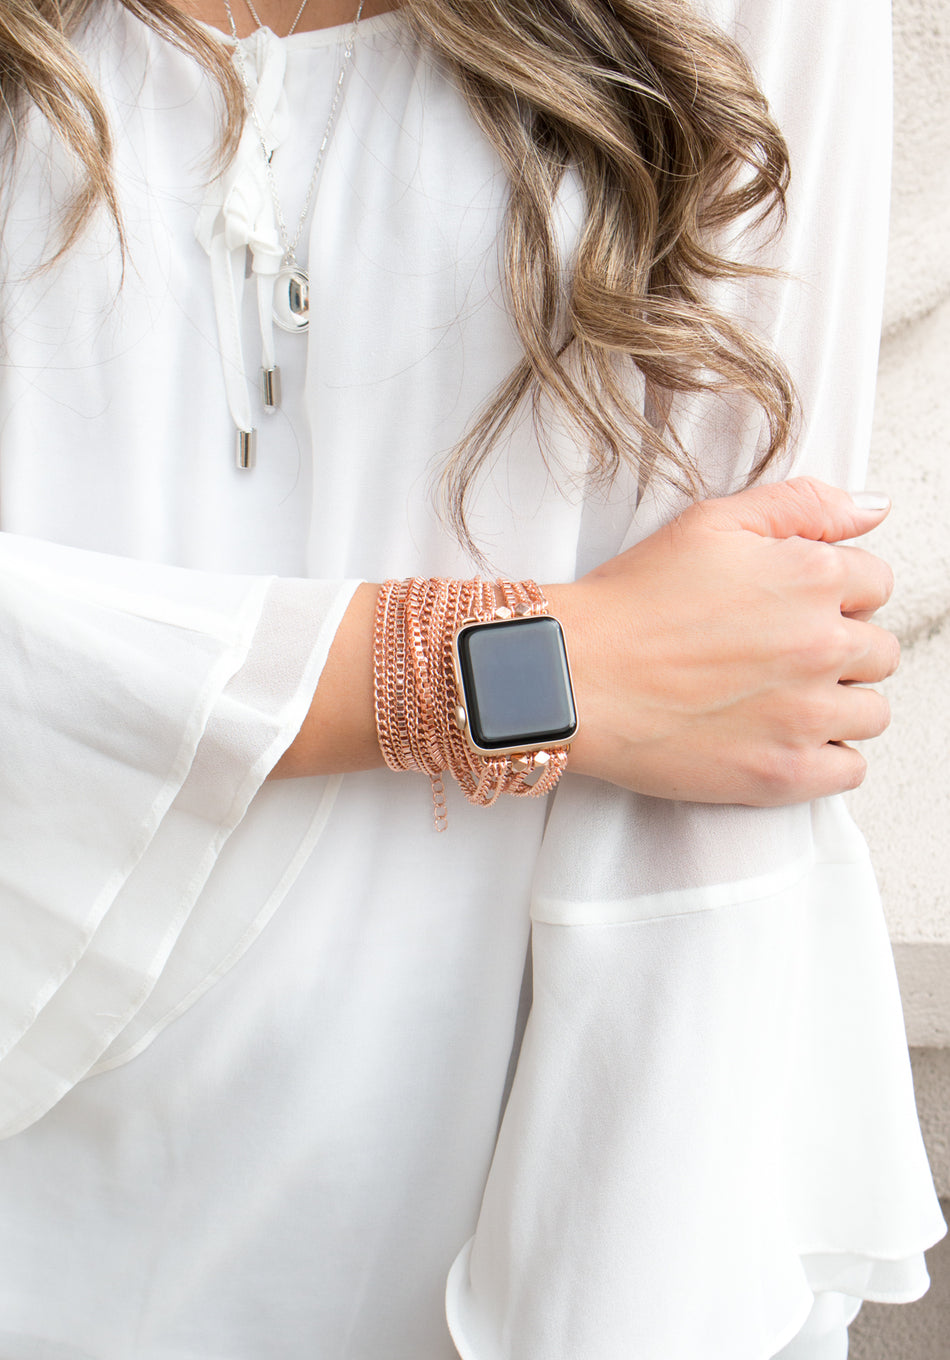 Nora Apple Watch Bracelets